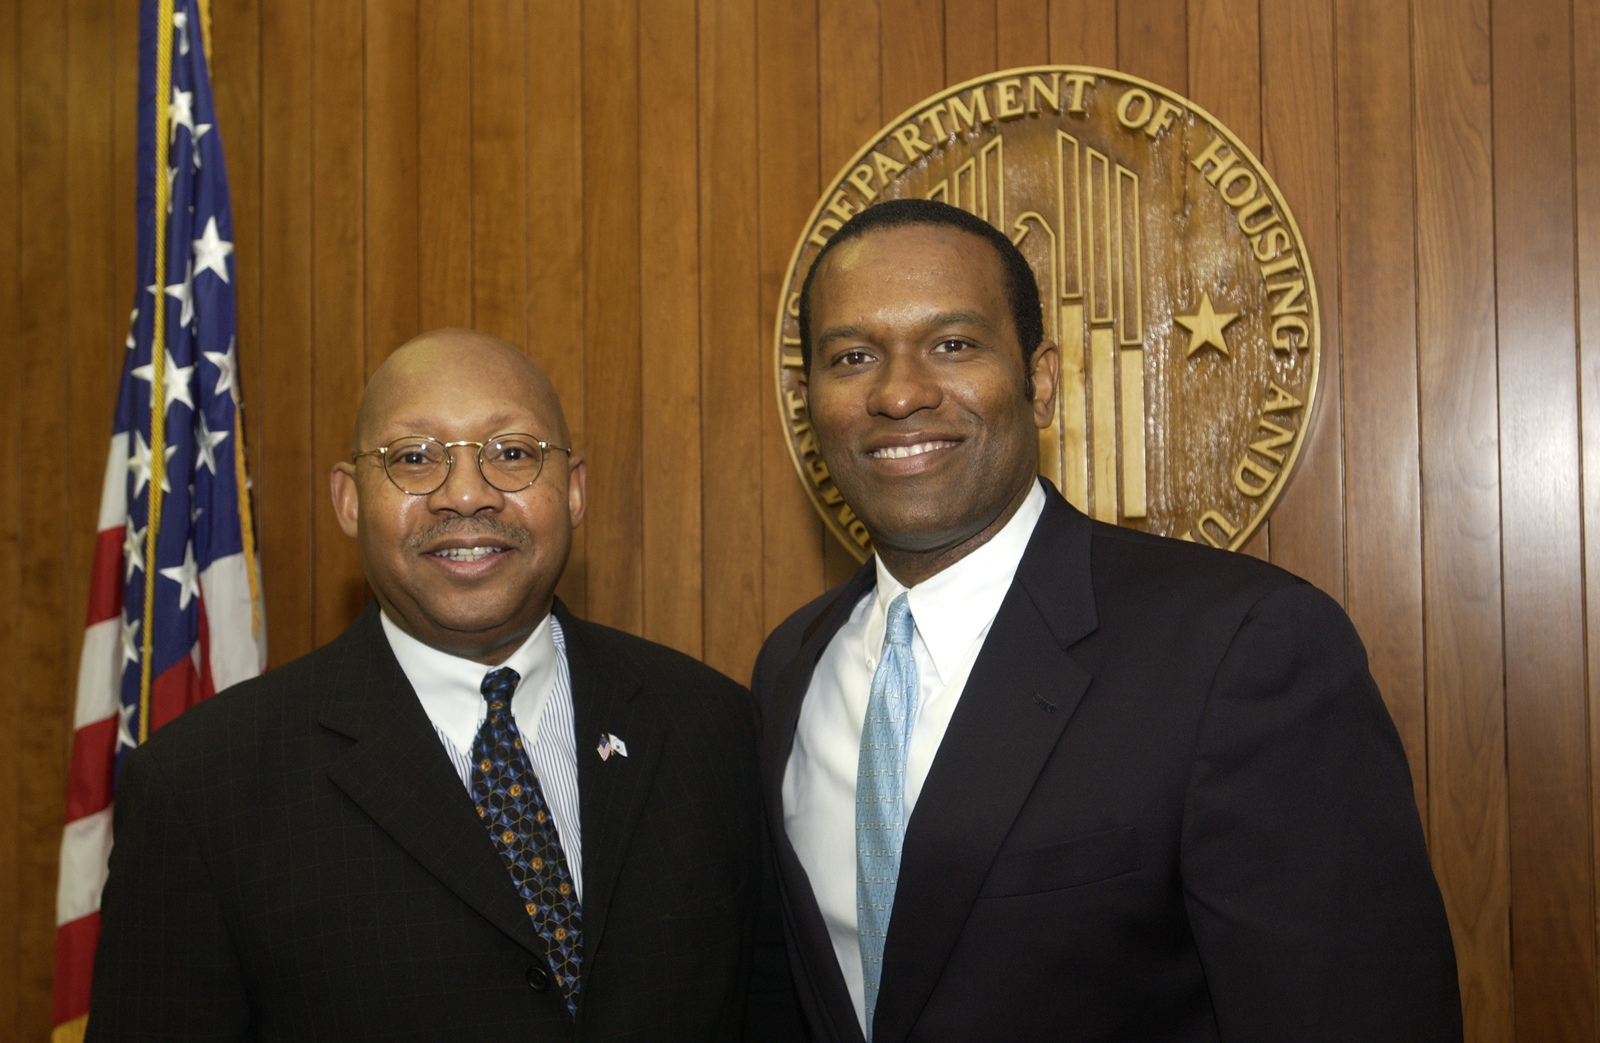 Secretary Alphonso Jackson with Terdema Ussery II - Secretary Alphonso Jackson meeting with Terdema Ussery II, [President and Chief Executive Officer of the National Basketball Association's Dallas Mavericks], at HUD Headquarters